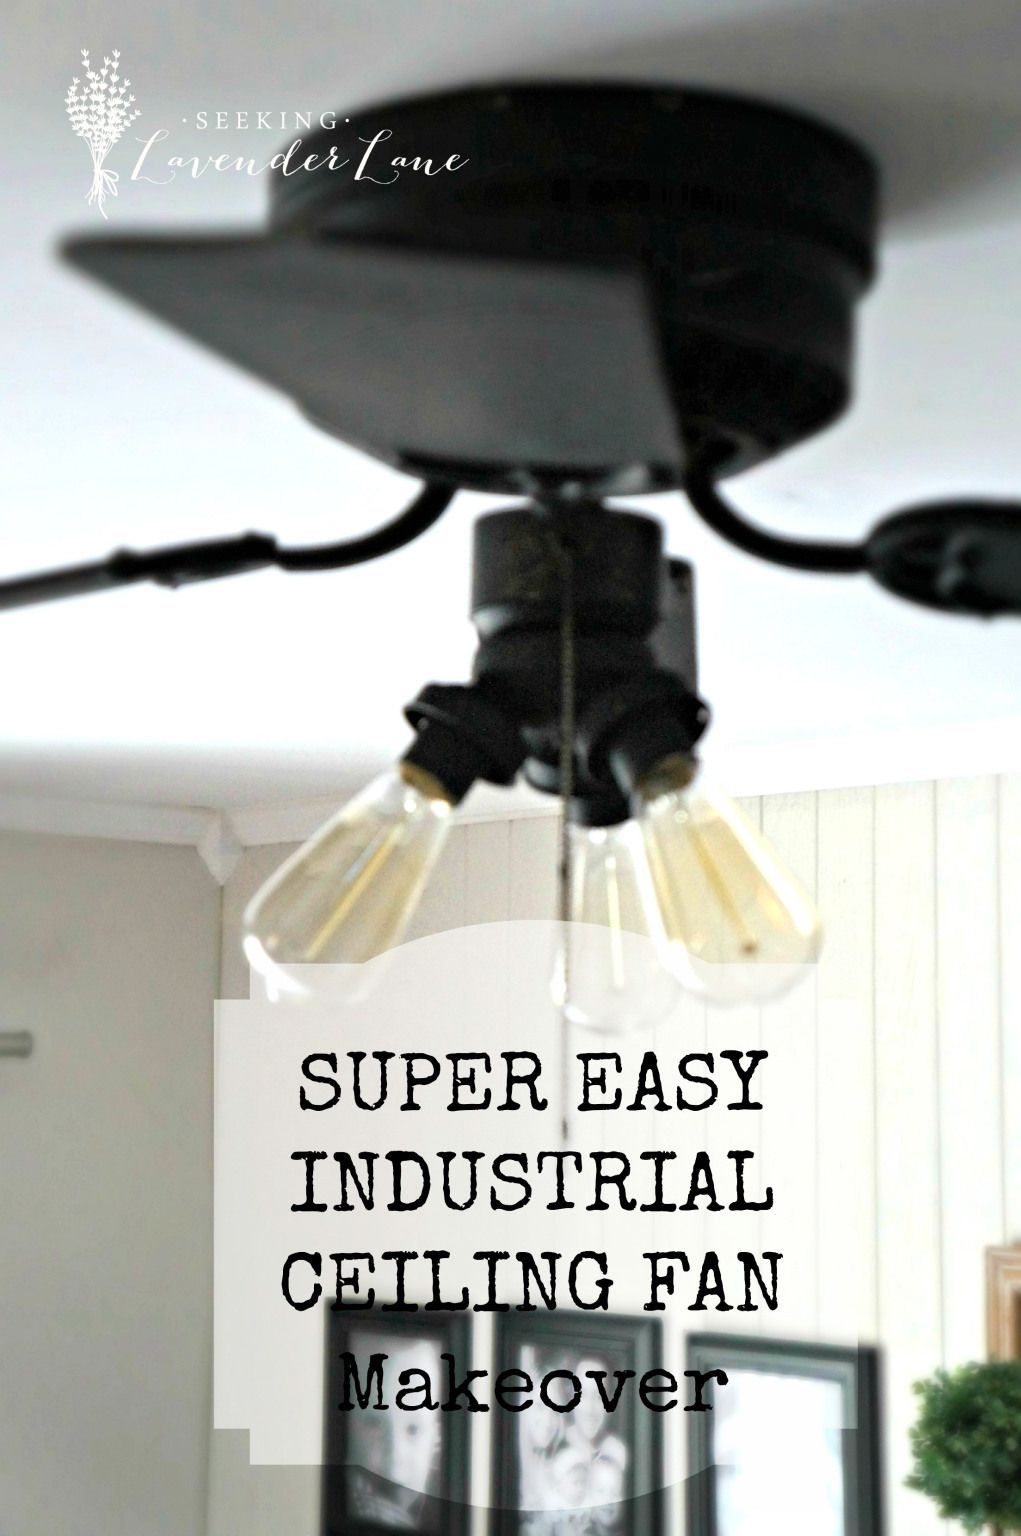 Industrial Style Ceiling Fans Super Easy Industrial Style Fan Makeover Seeking Lavender Lane